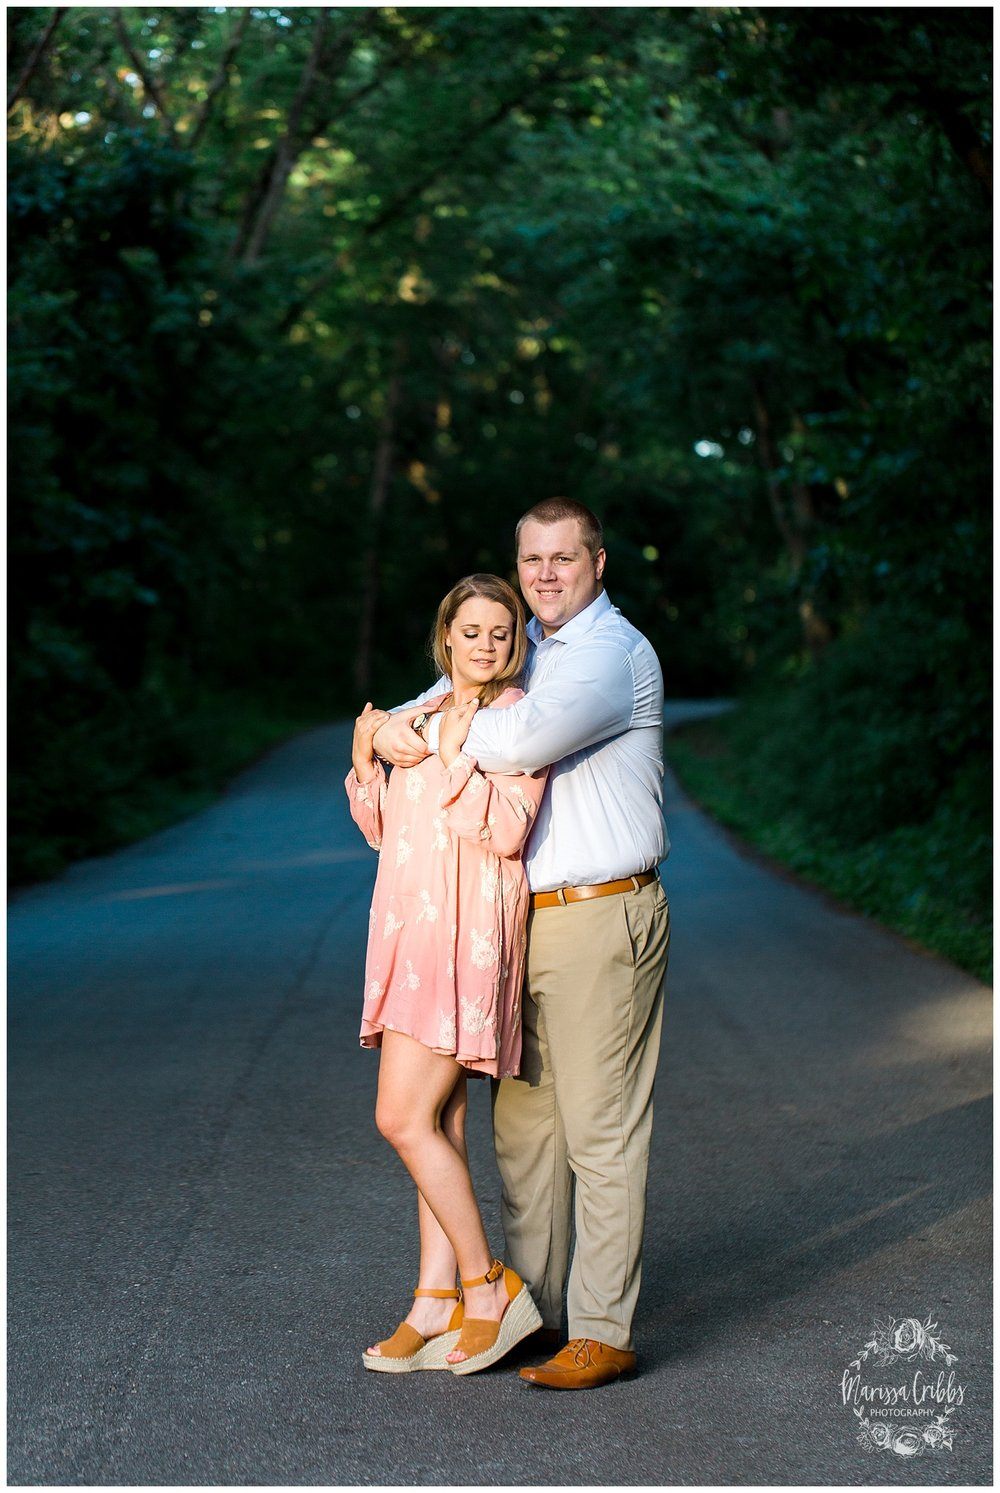 Morgan & Ryan Engaged | Lake Quivira Engagement Photography | Marissa Cribbs Photography_1544.jpg